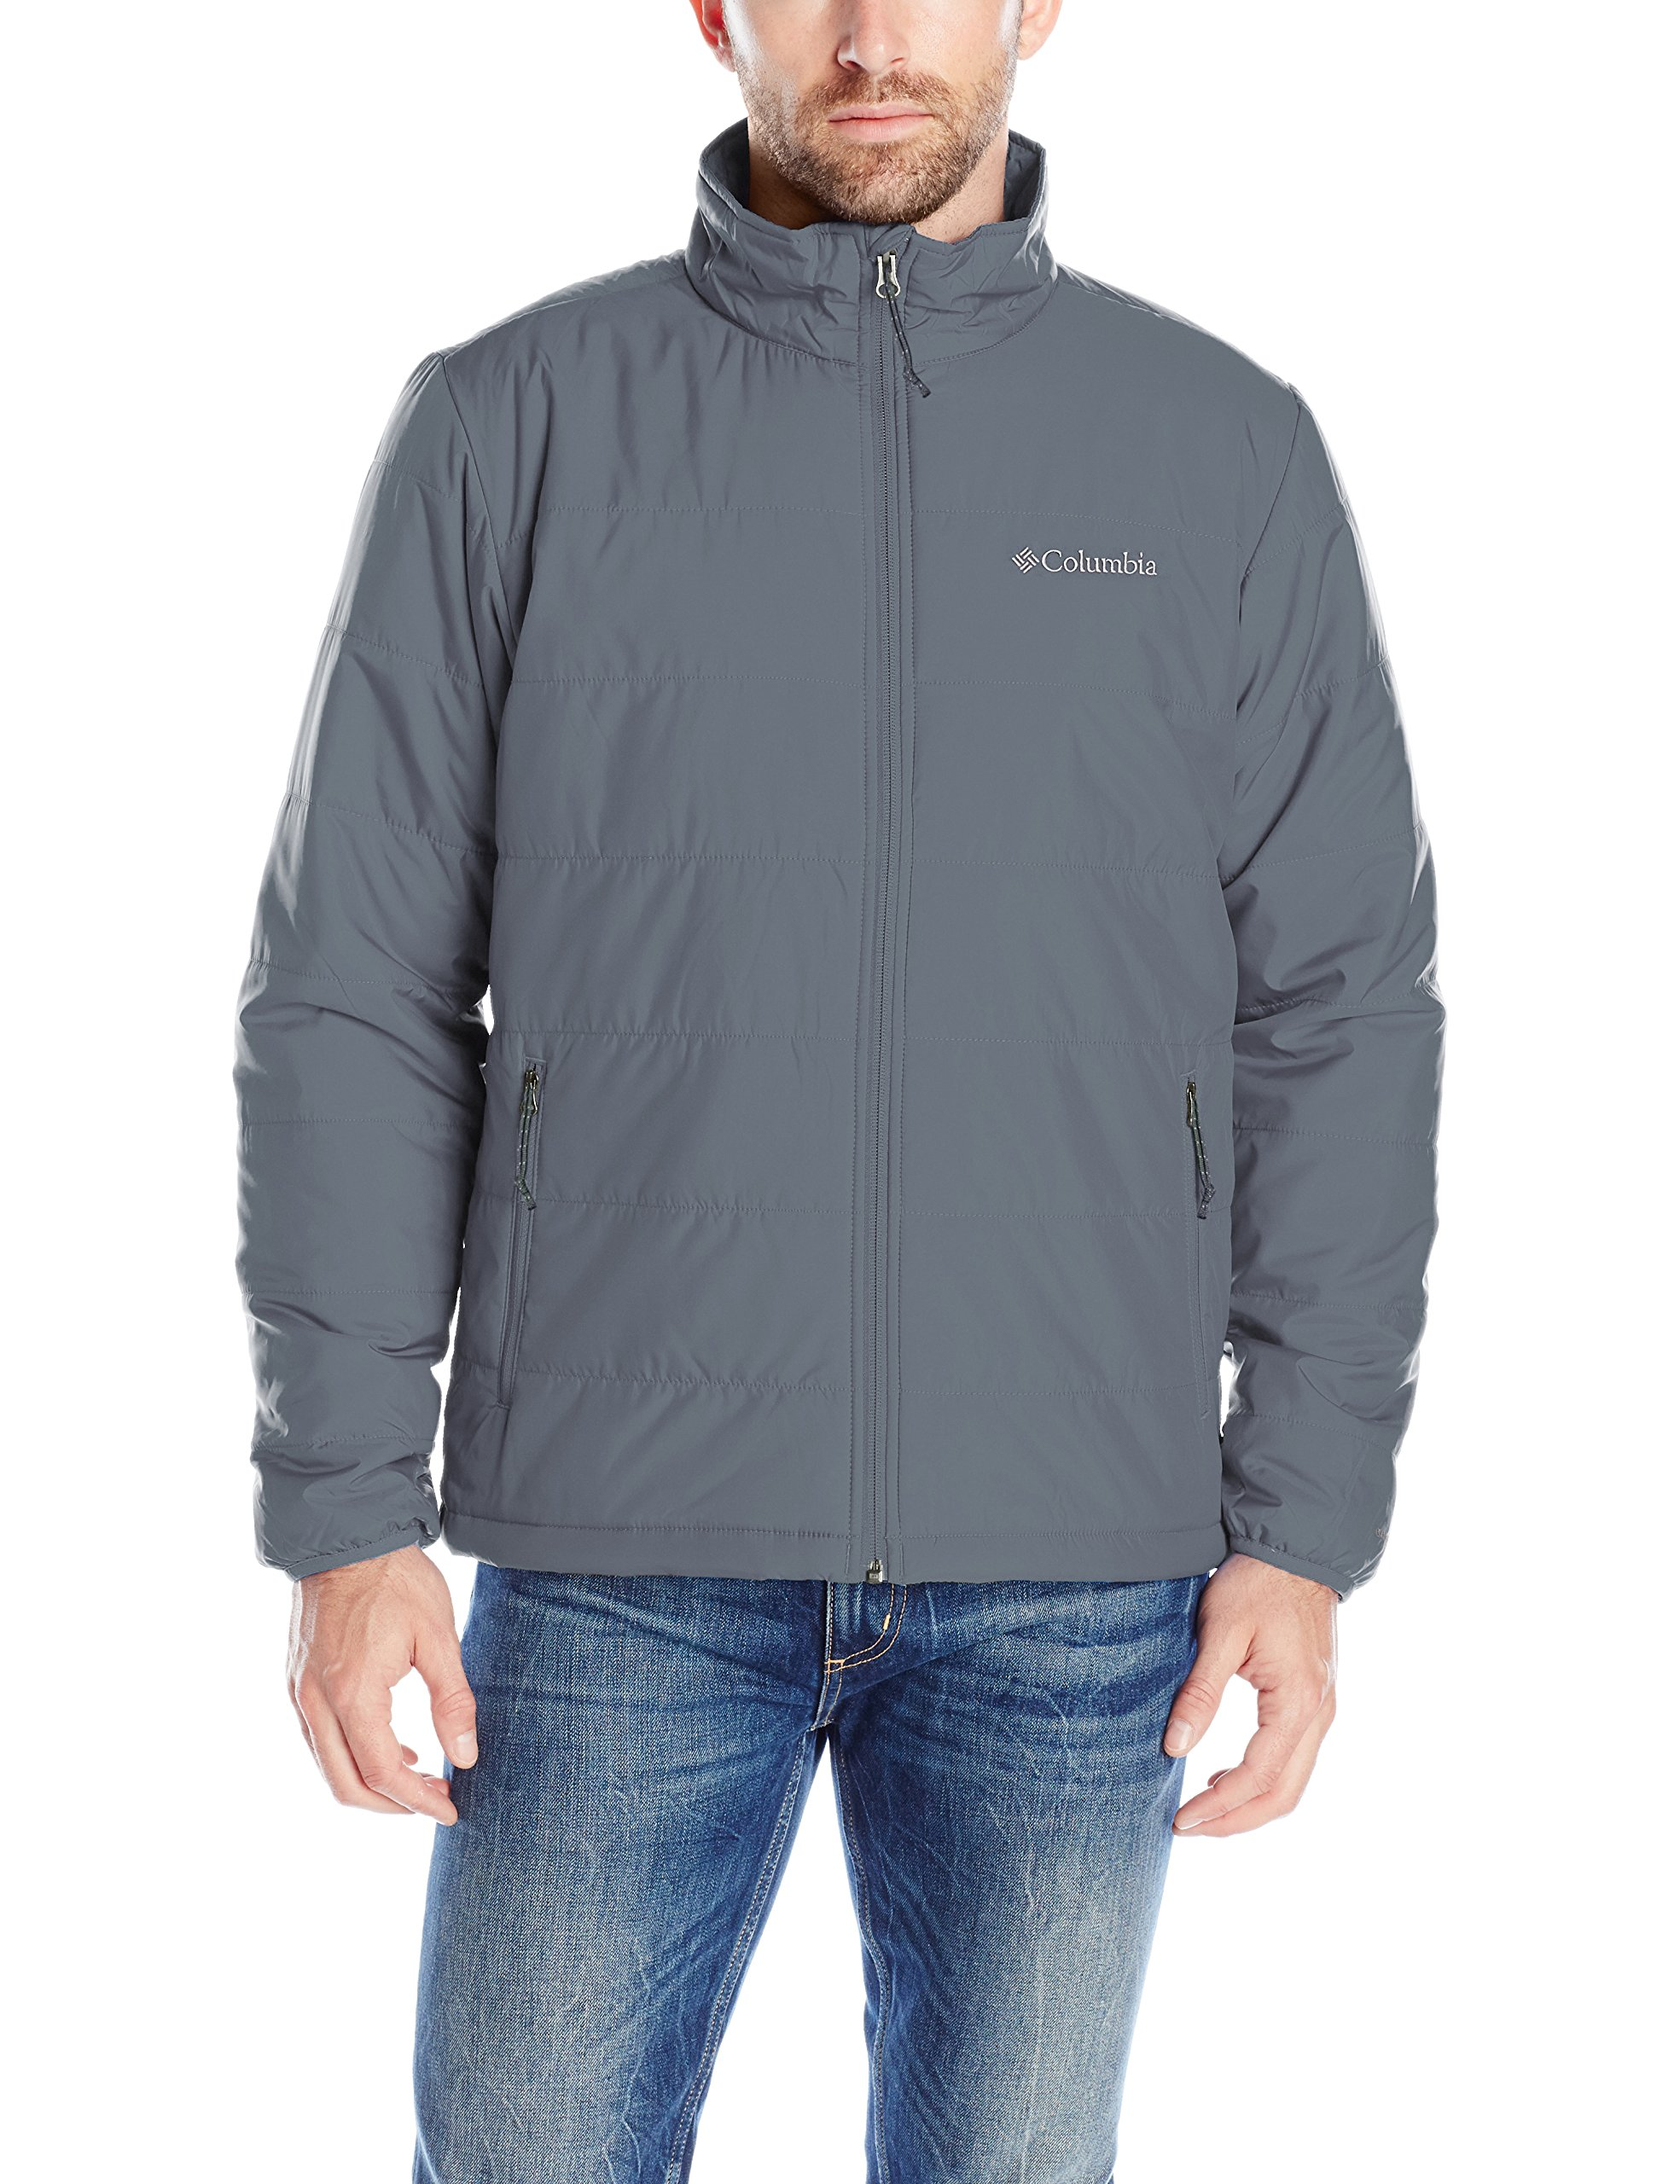 Columbia Men's Saddle Chutes Jacket, Graphite, X-Large by Columbia